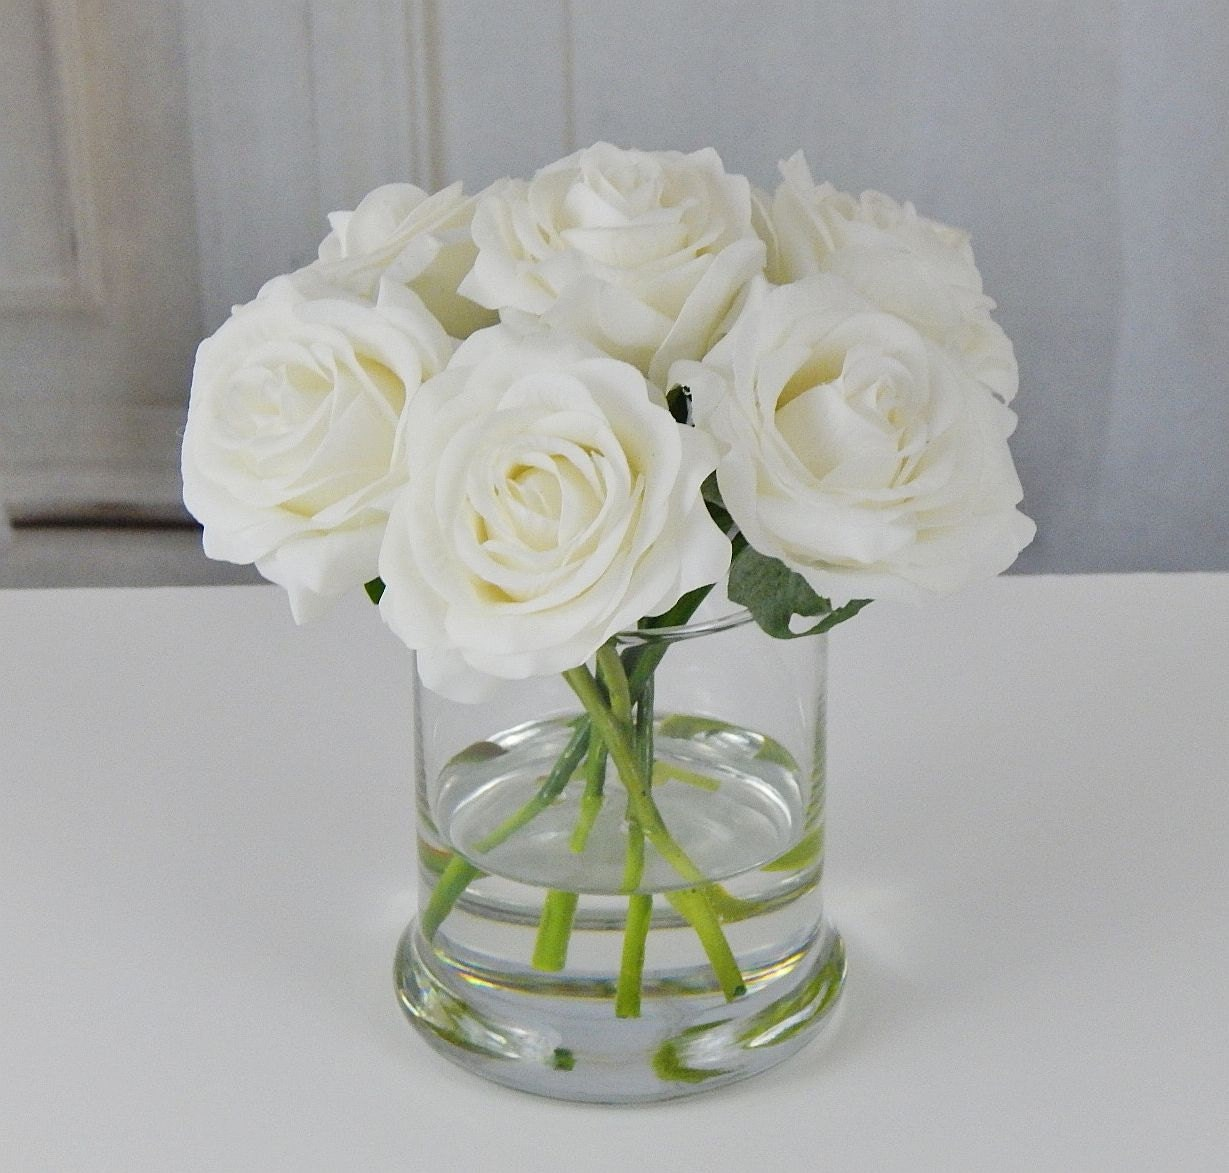 White roseroses glass vase faux water acrylic illusion silk white roseroses glass vase faux water acrylic illusion silk real touch flowers floral arrangement centerpiece home decor gift reviewsmspy